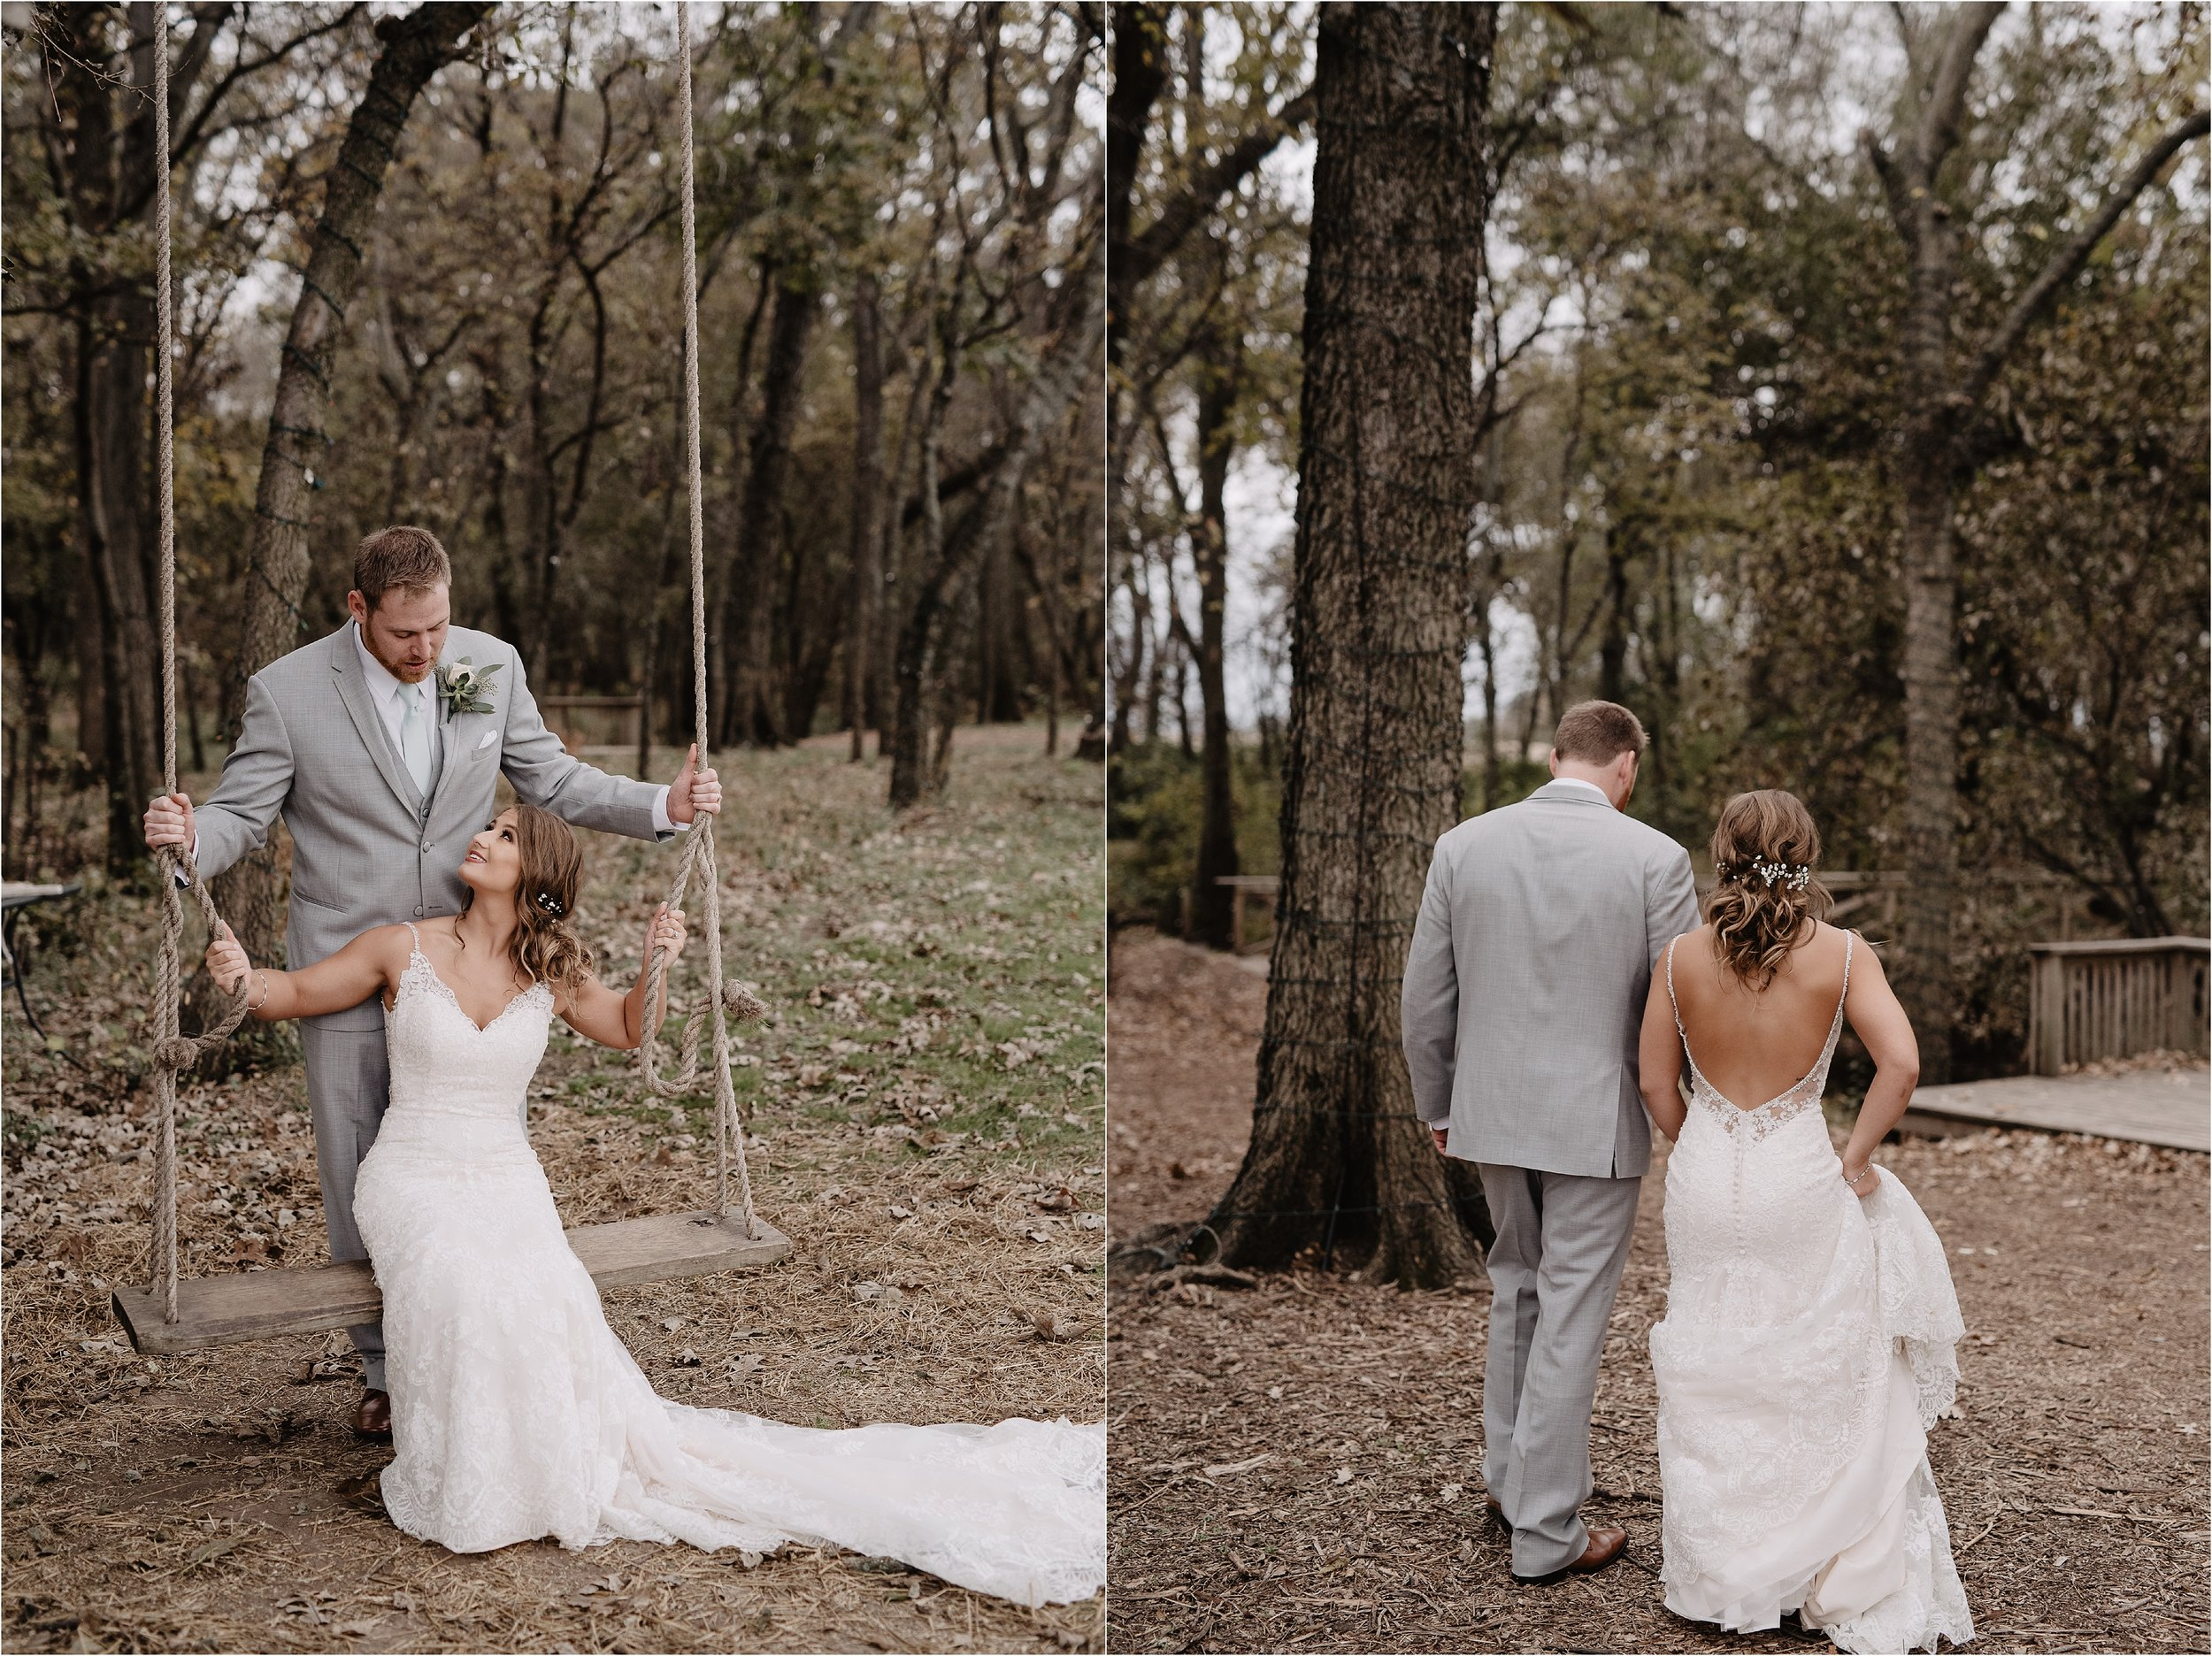 Fulton Valley Farms Wedding, Abby Bindrum & Jordan Sroufe, Wichita Wedding Photographer-65.jpg